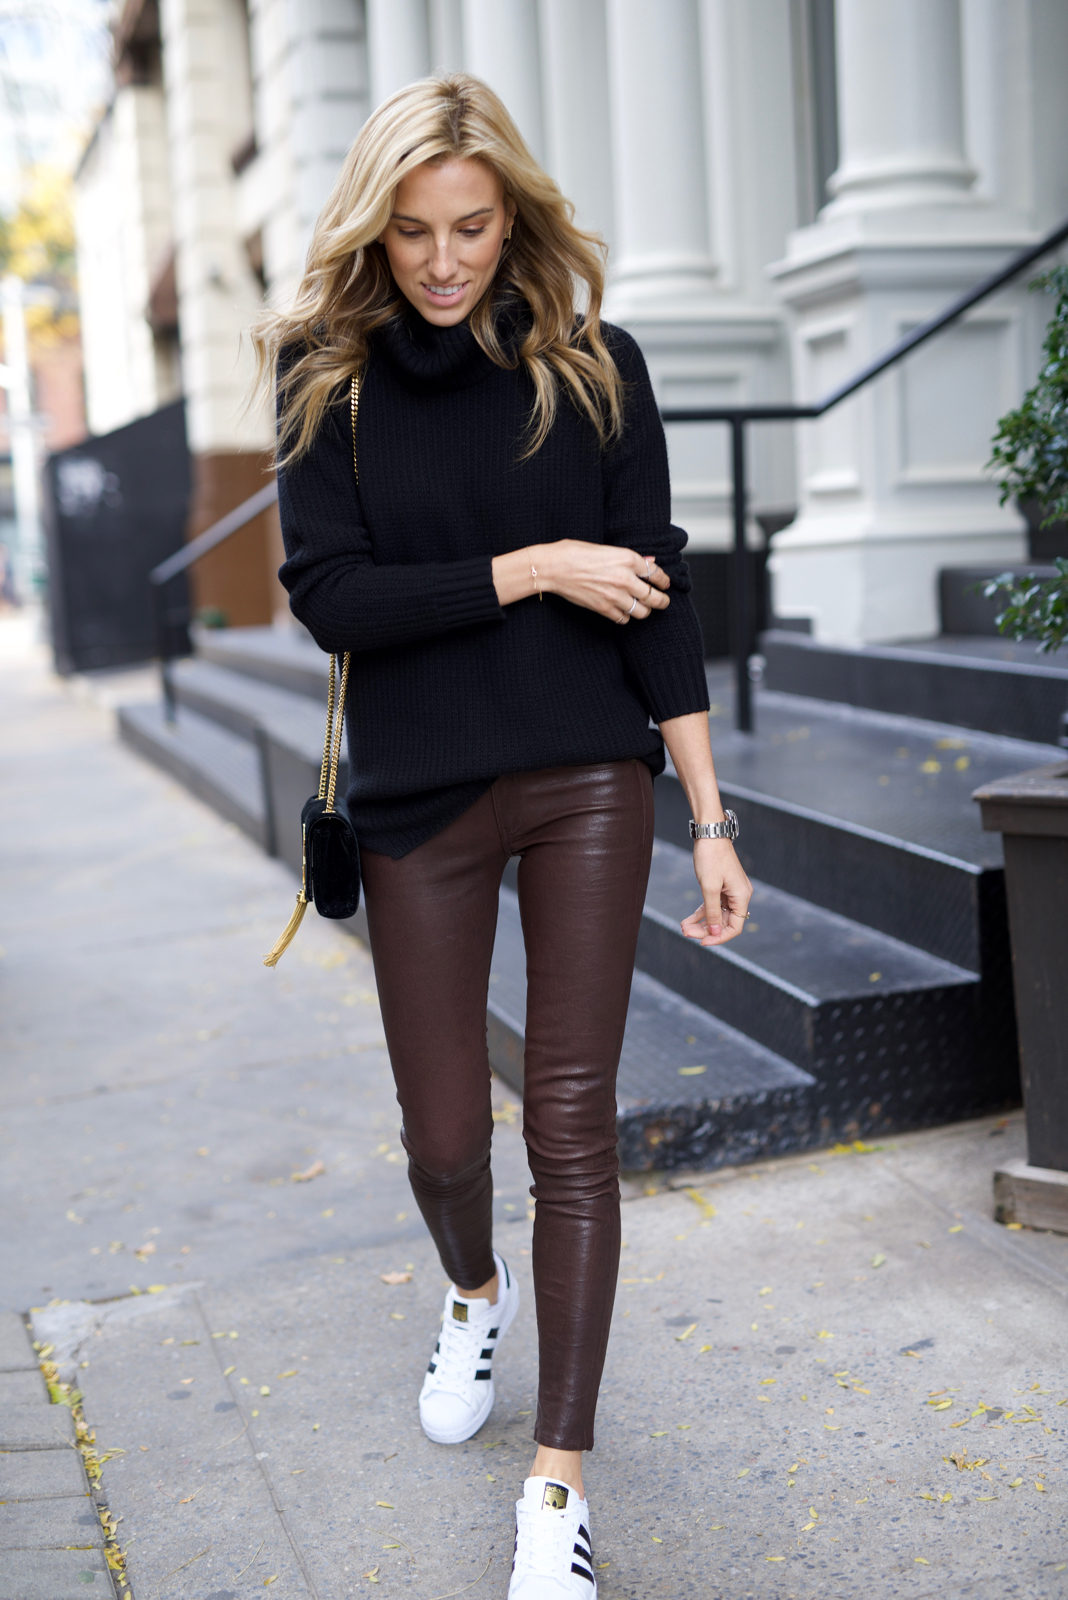 Sporty Chic in Leather Pants & Adidas Superstar Sneakers